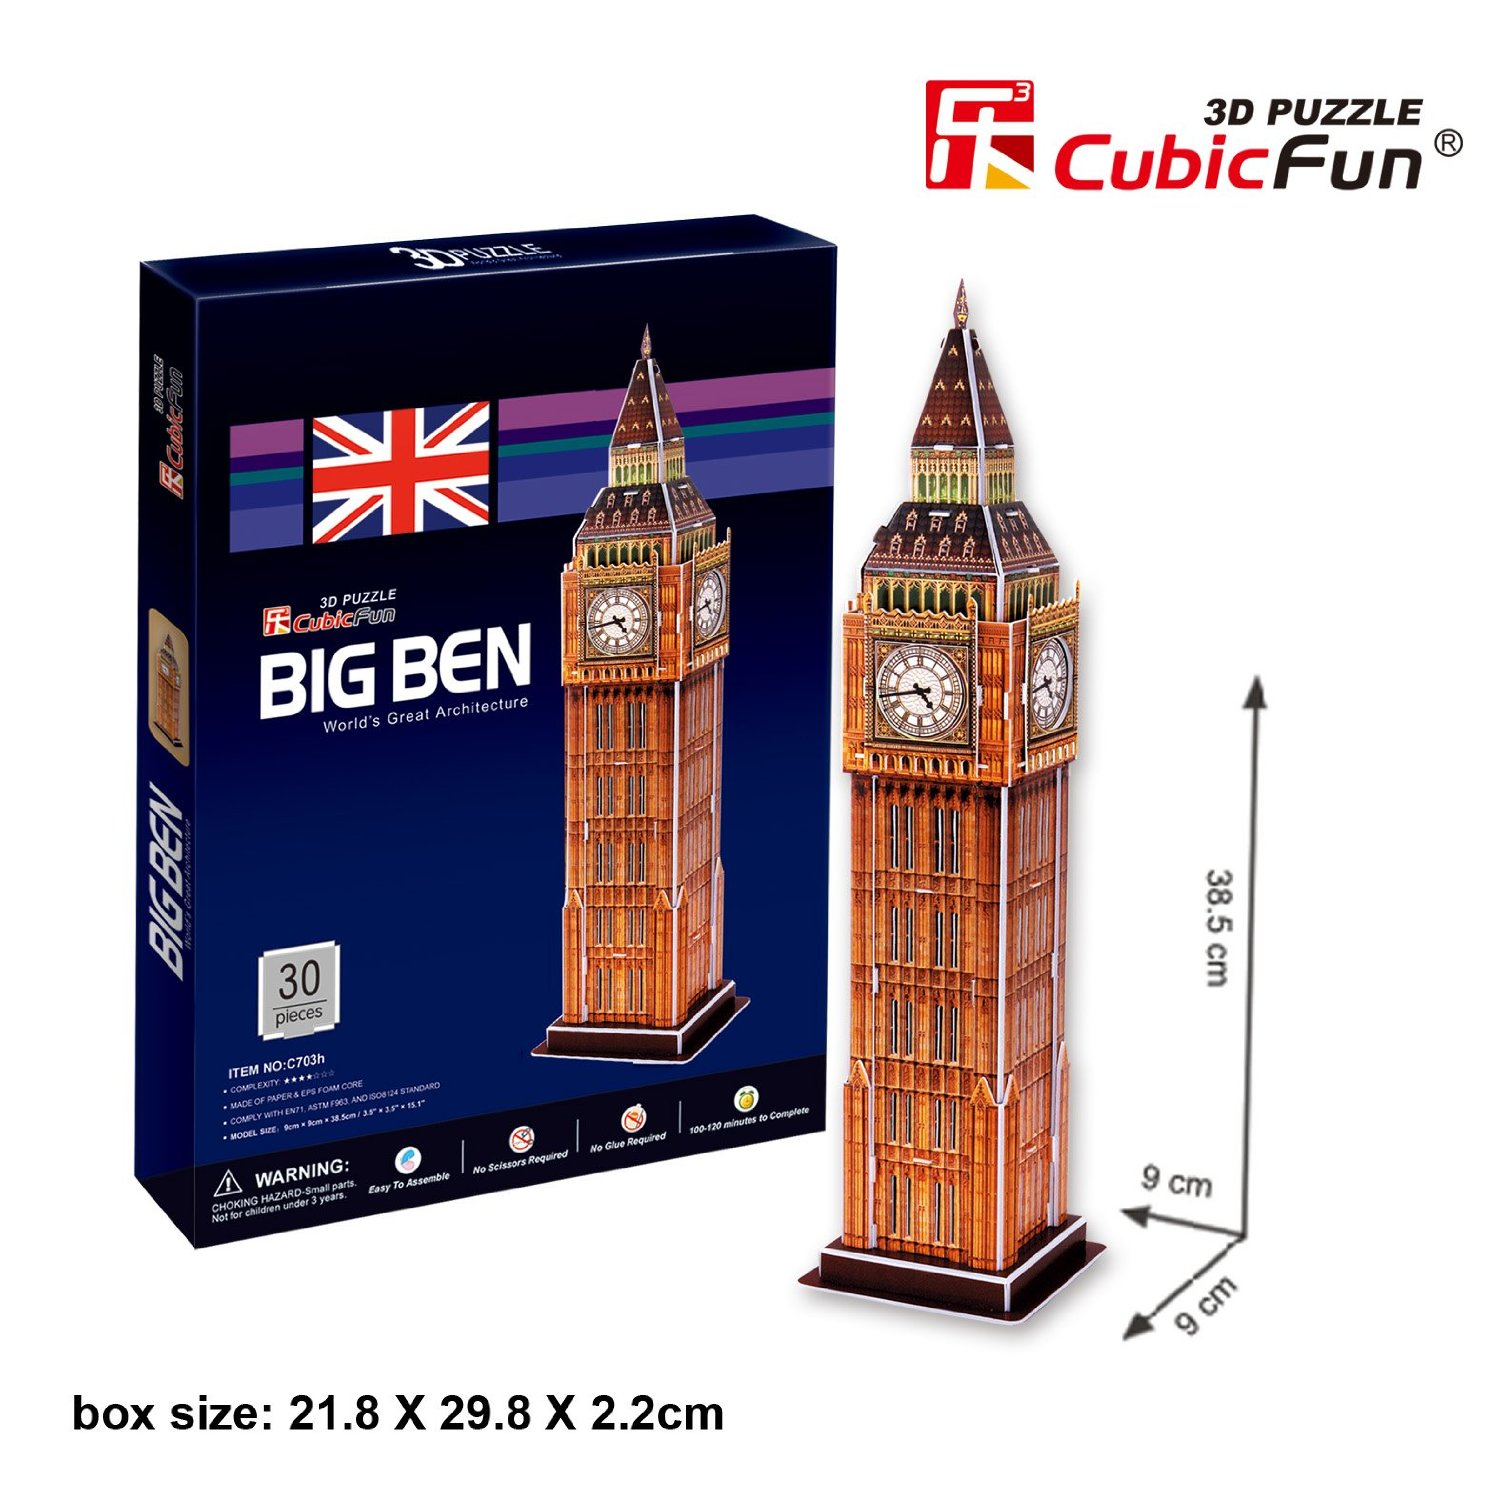 cubic-fun-puzzle-3d-big-ben-london-england-30-teile-puzzle-cubic-fun-c703h